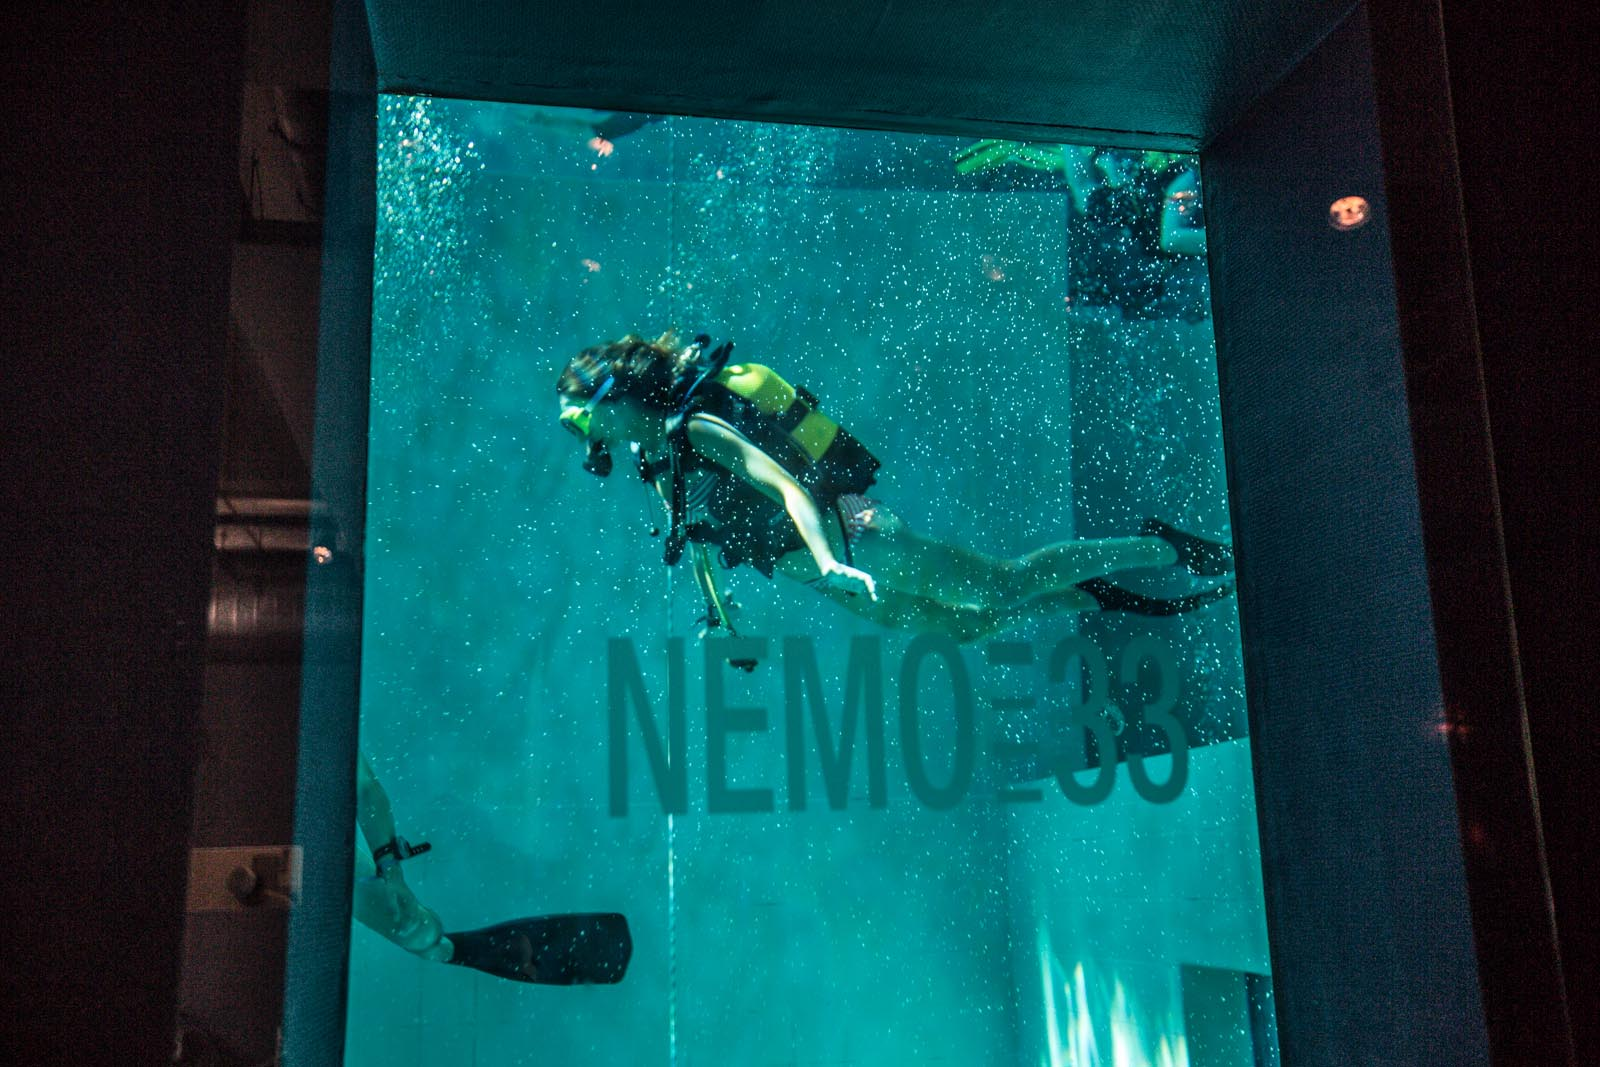 An actual diver seen through the observation window of the restaurant and bar at Nemo 33.